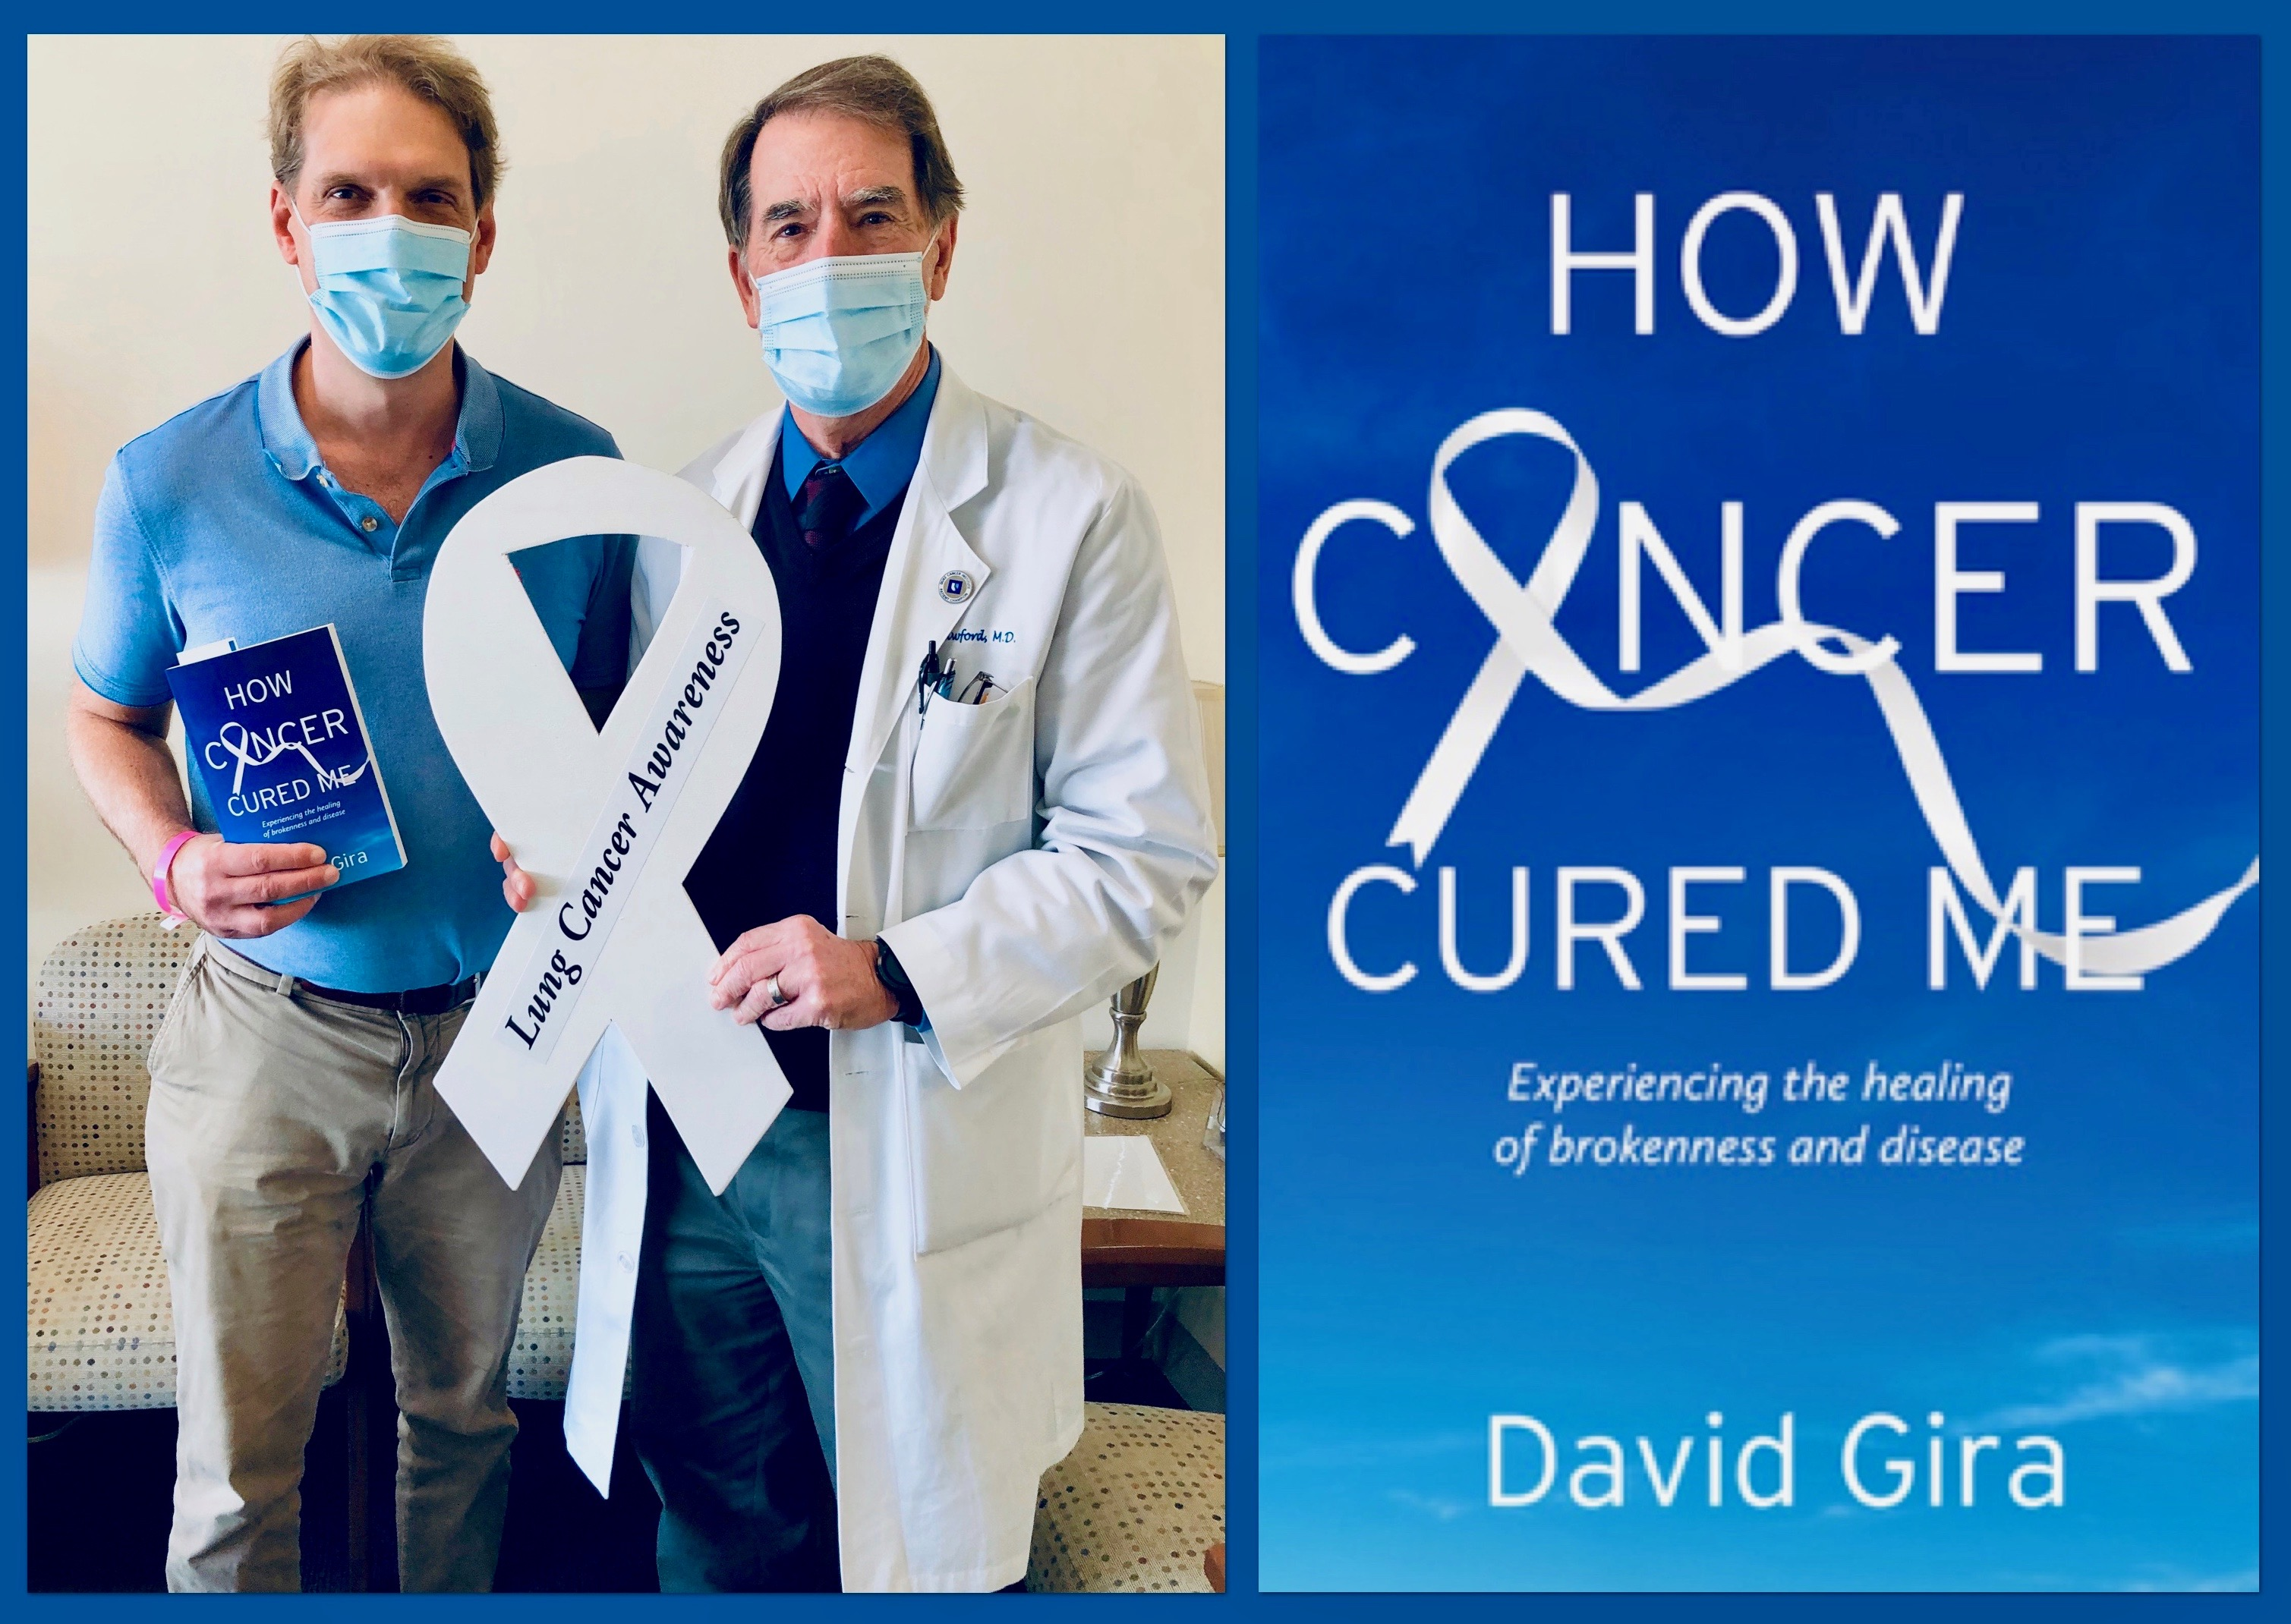 David Gira and Dr. Jeffrey Crawford